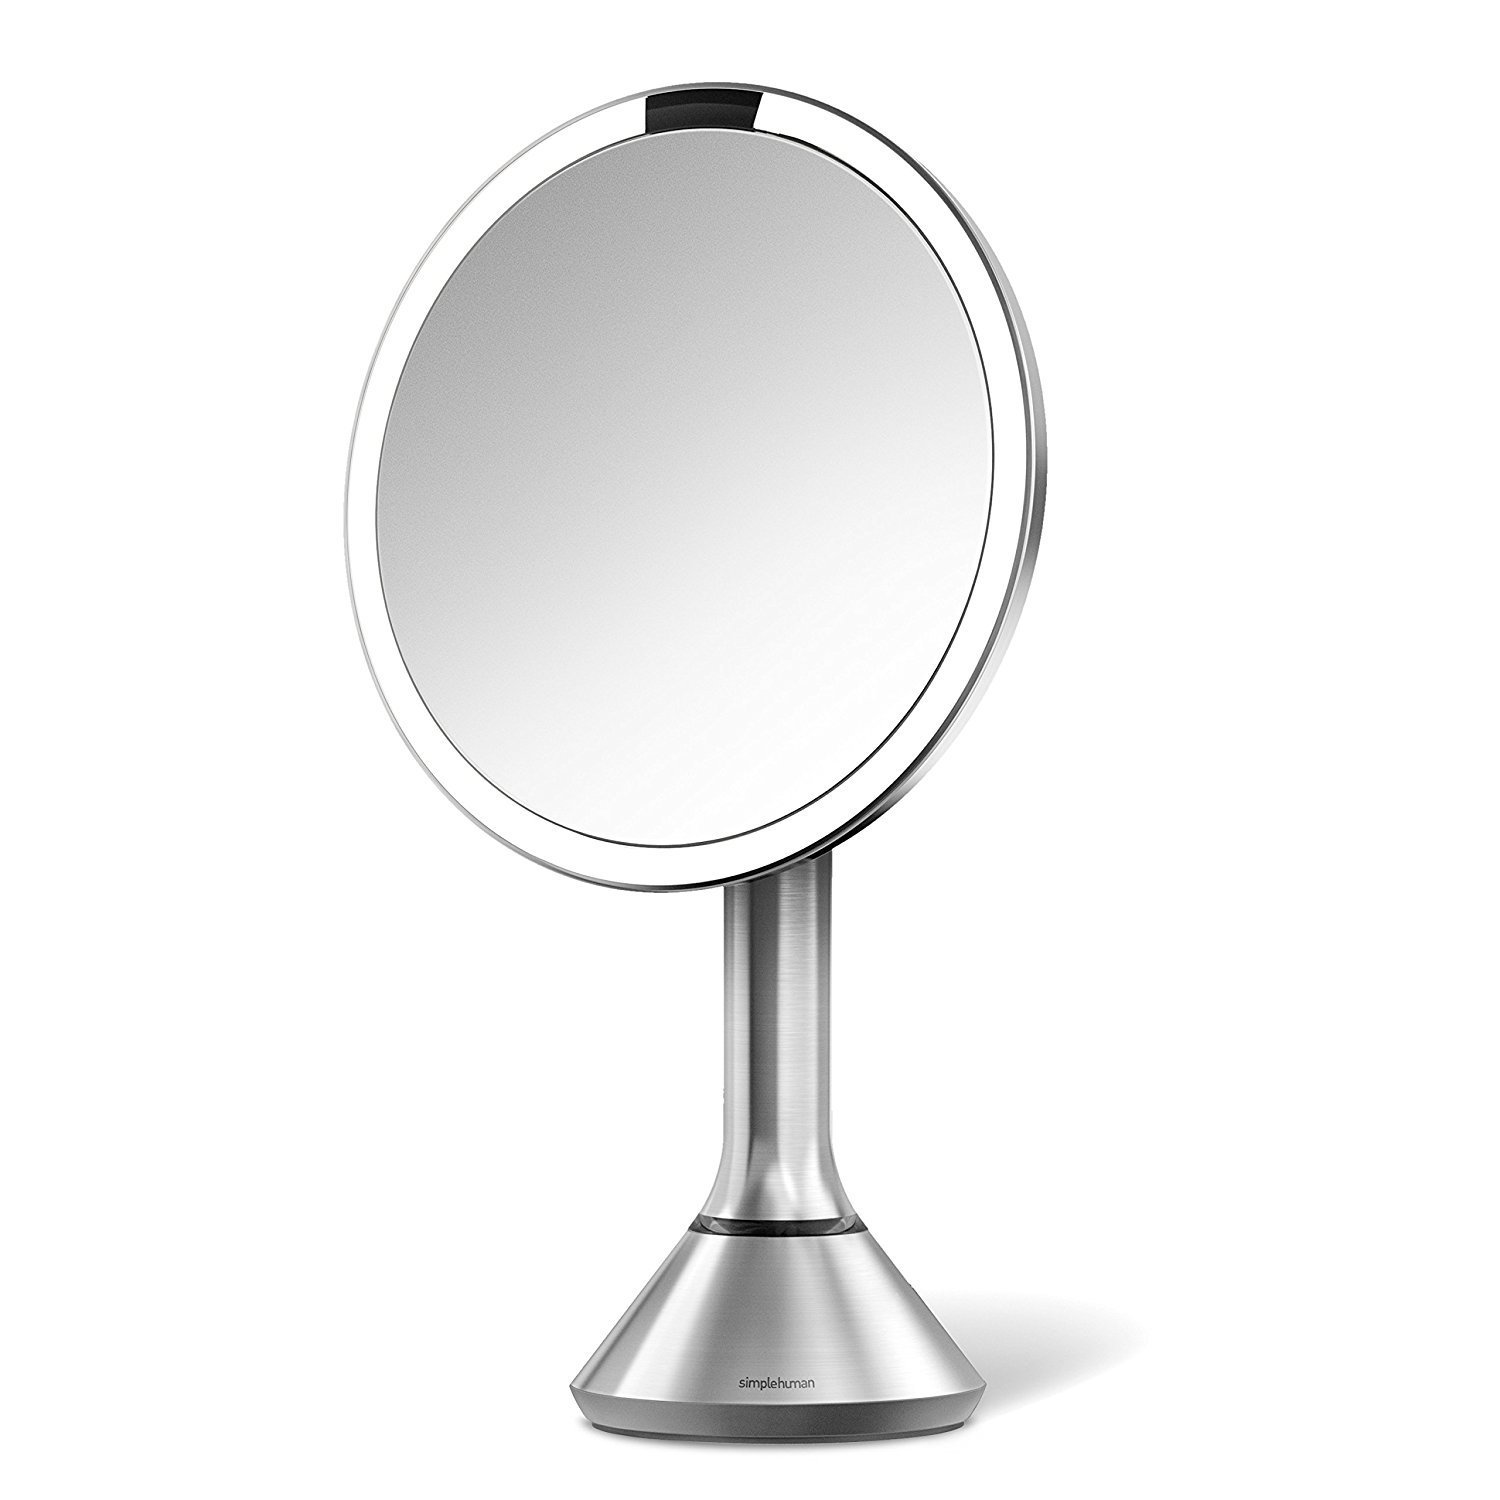 Best Lighted Vanity Mirror-Simplehuman Sensor Mirror